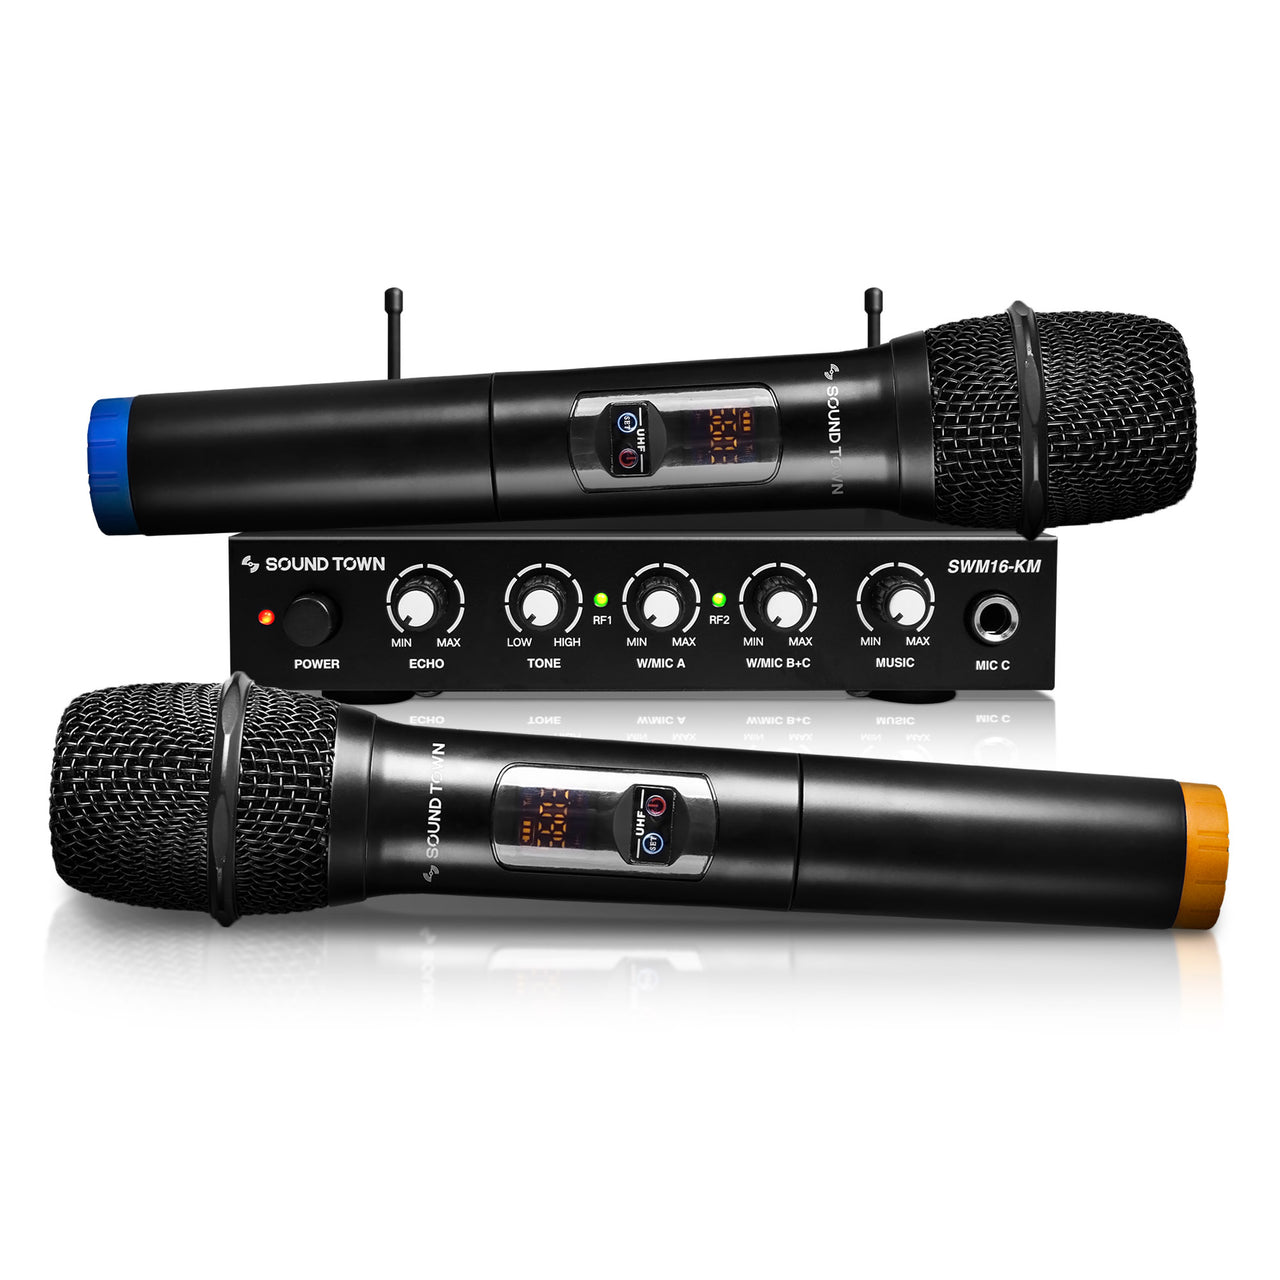 SWM16-KM<br/>SWM Series UHF 16 Channels Wireless Microphone & Karaoke Mixer System w/ 2 Handheld Microphones, for Church, School, Wedding, Meeting, Karaoke